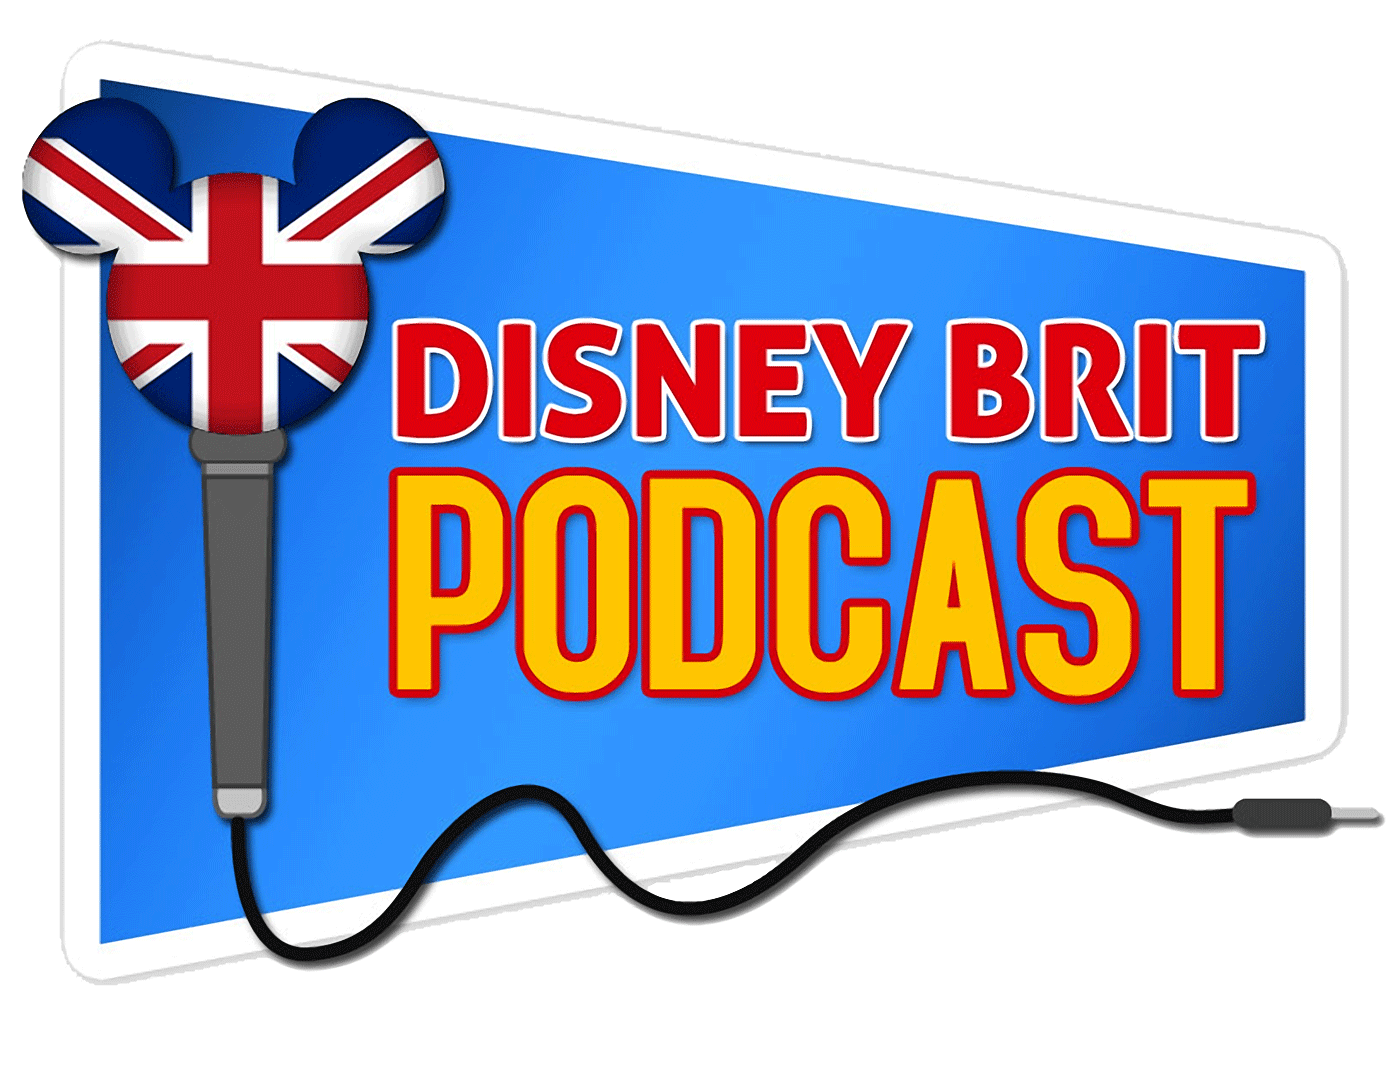 DIsney Podcast